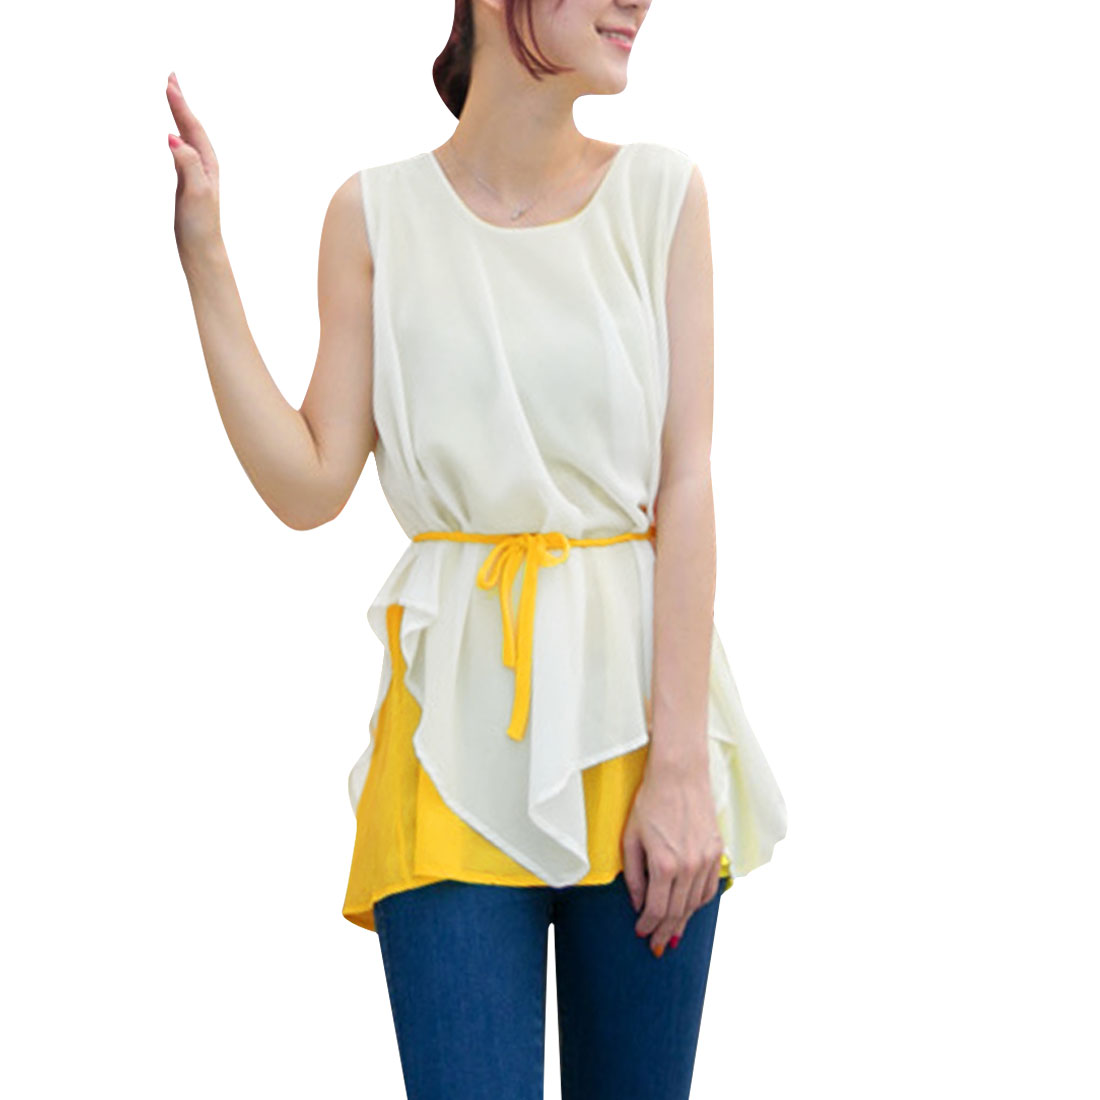 Ladies Pullover Sleeveless Tiered Top Shirt Yellow White S